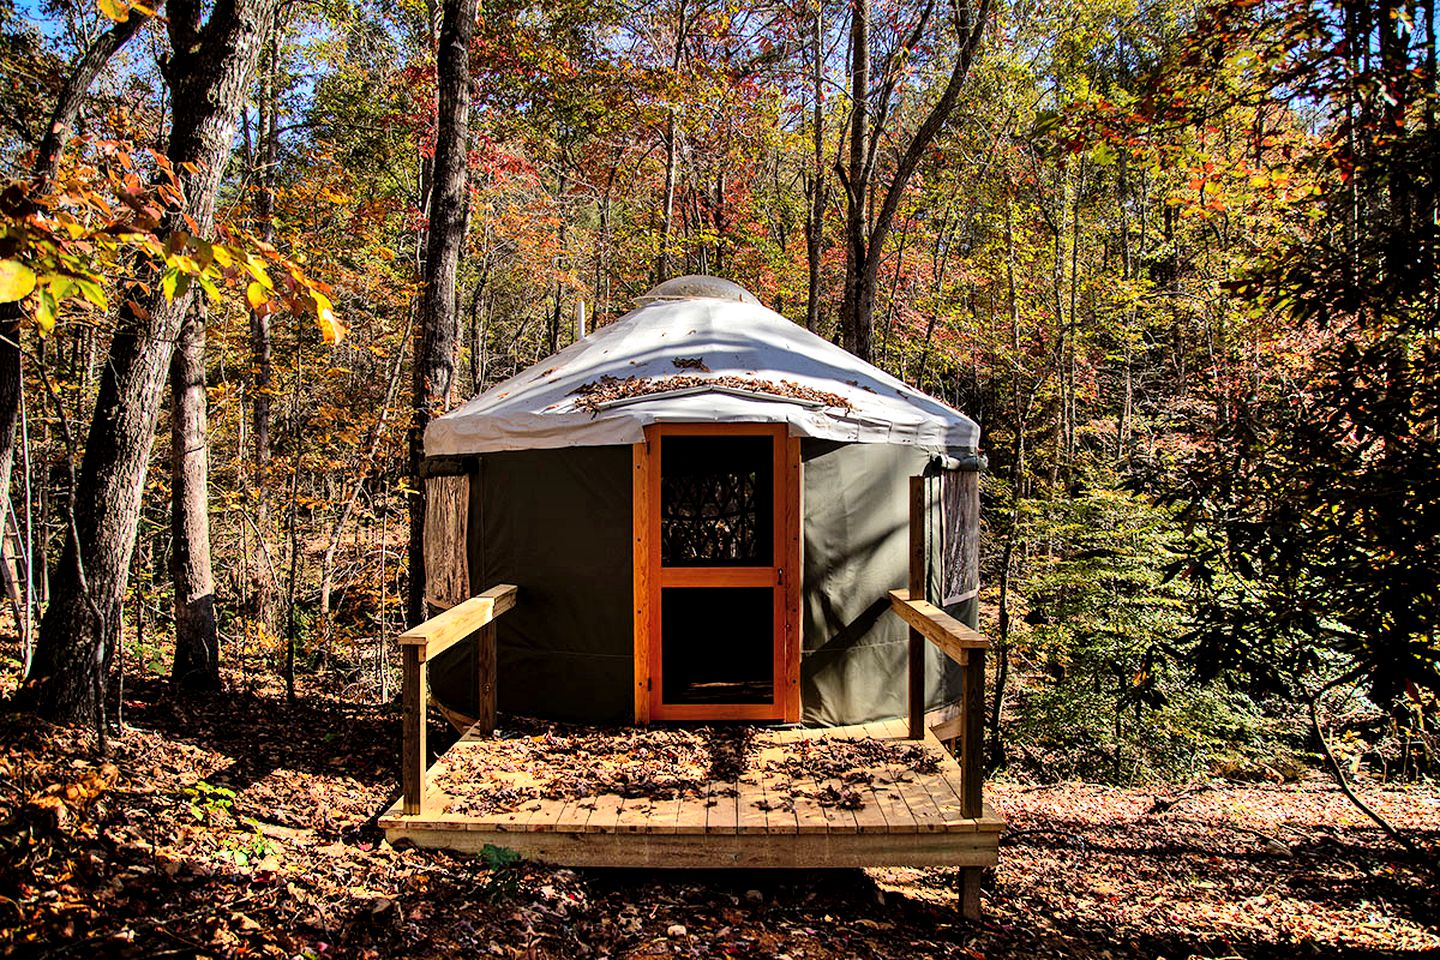 This accommodation near Lake Lure is great for glamping in North Carolina